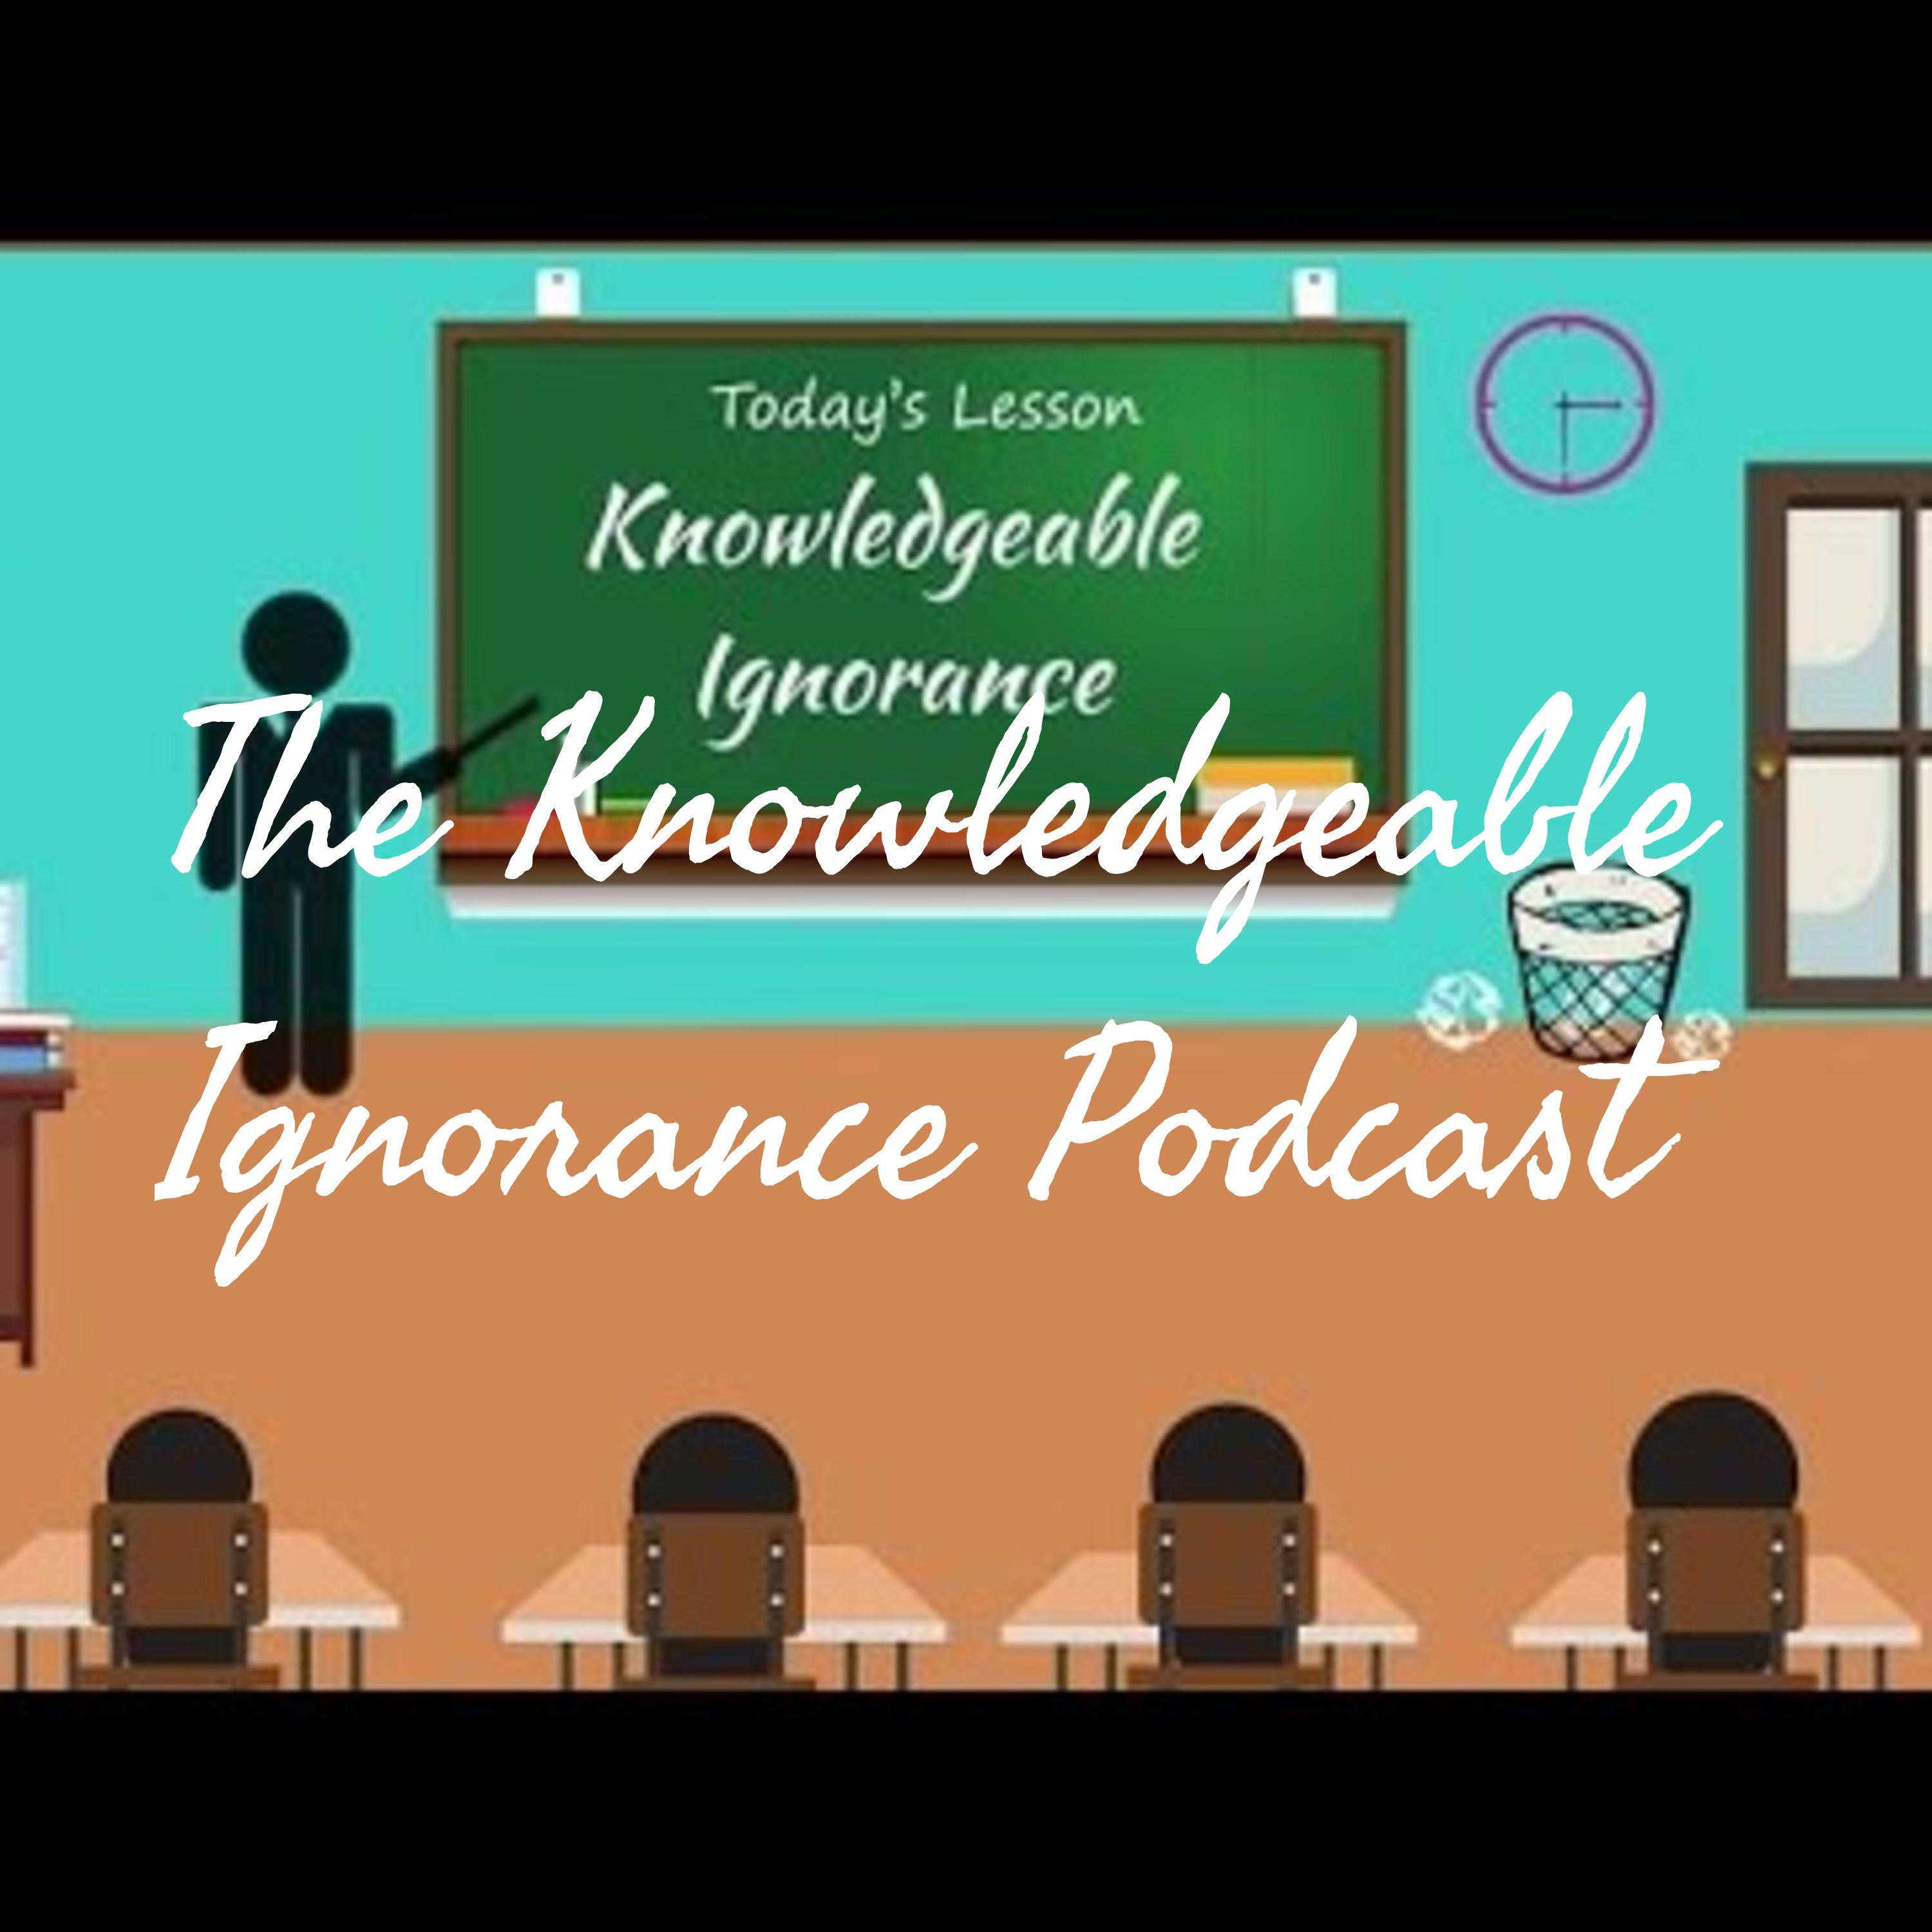 The Knowledgeable Ignorance Podcast